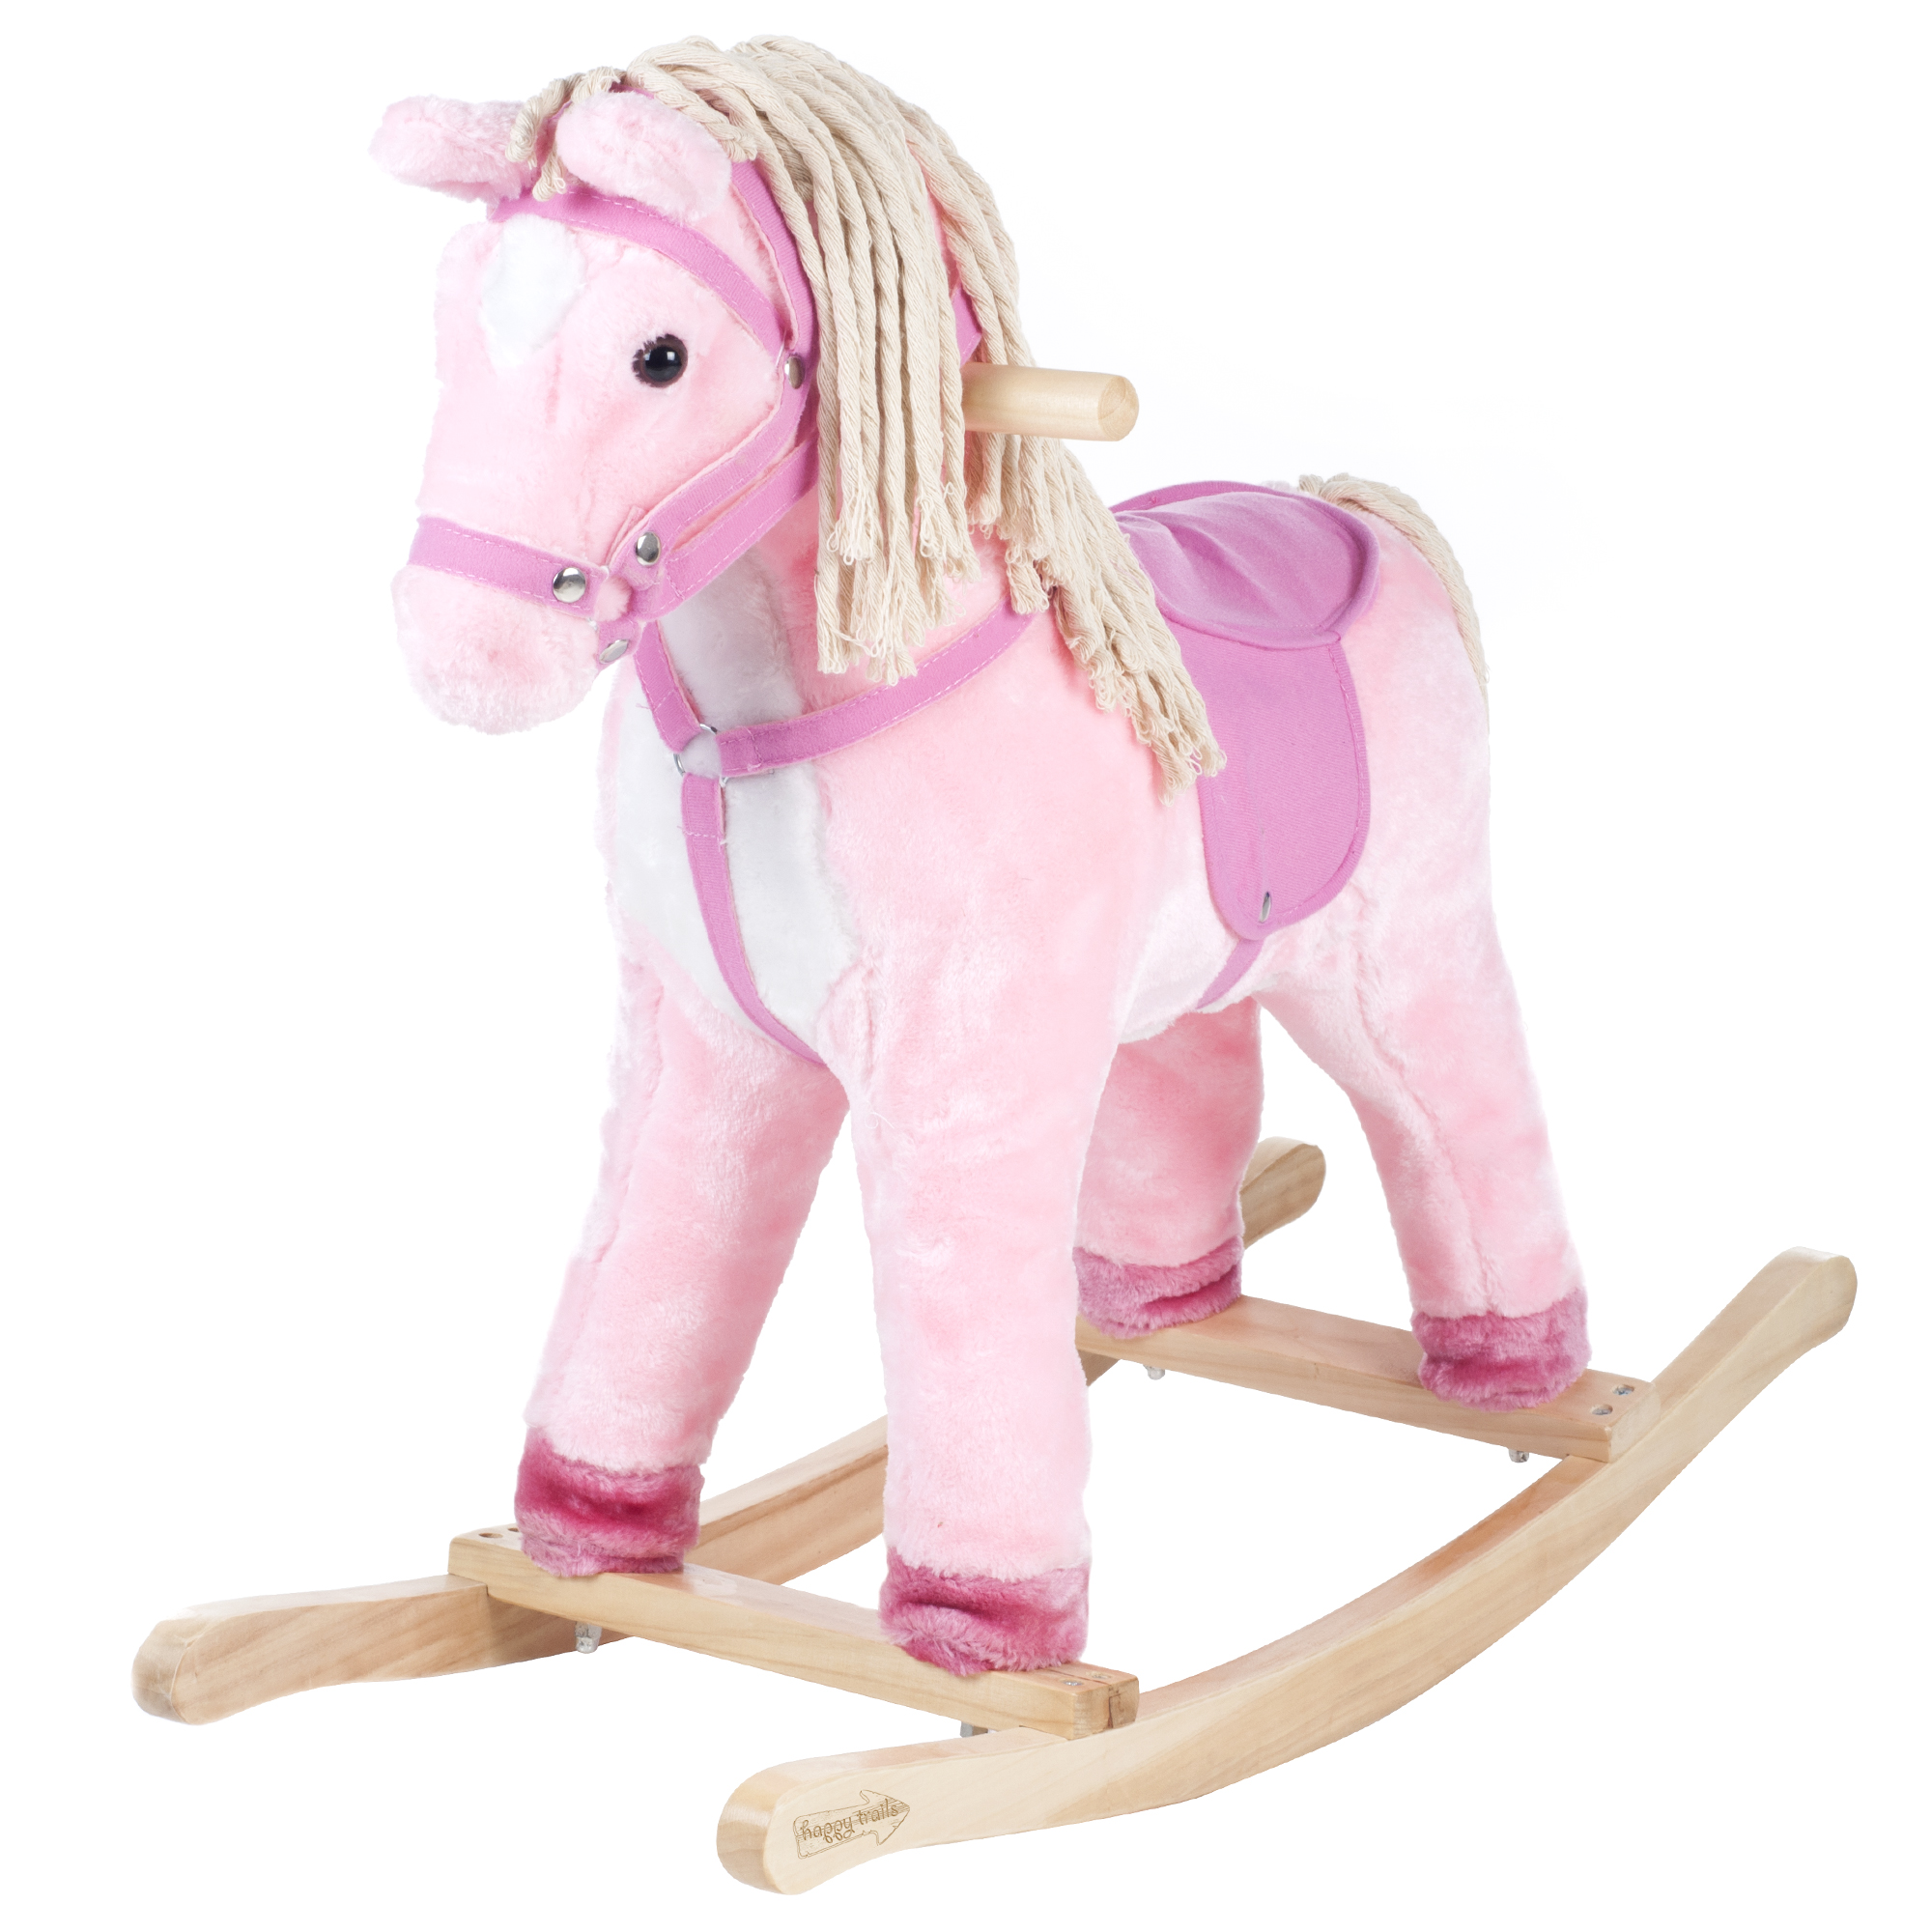 Pink Patty the Pony Rocking Horse Animal Ride on Toy with Cotton Hair & Tail by Happy Trails